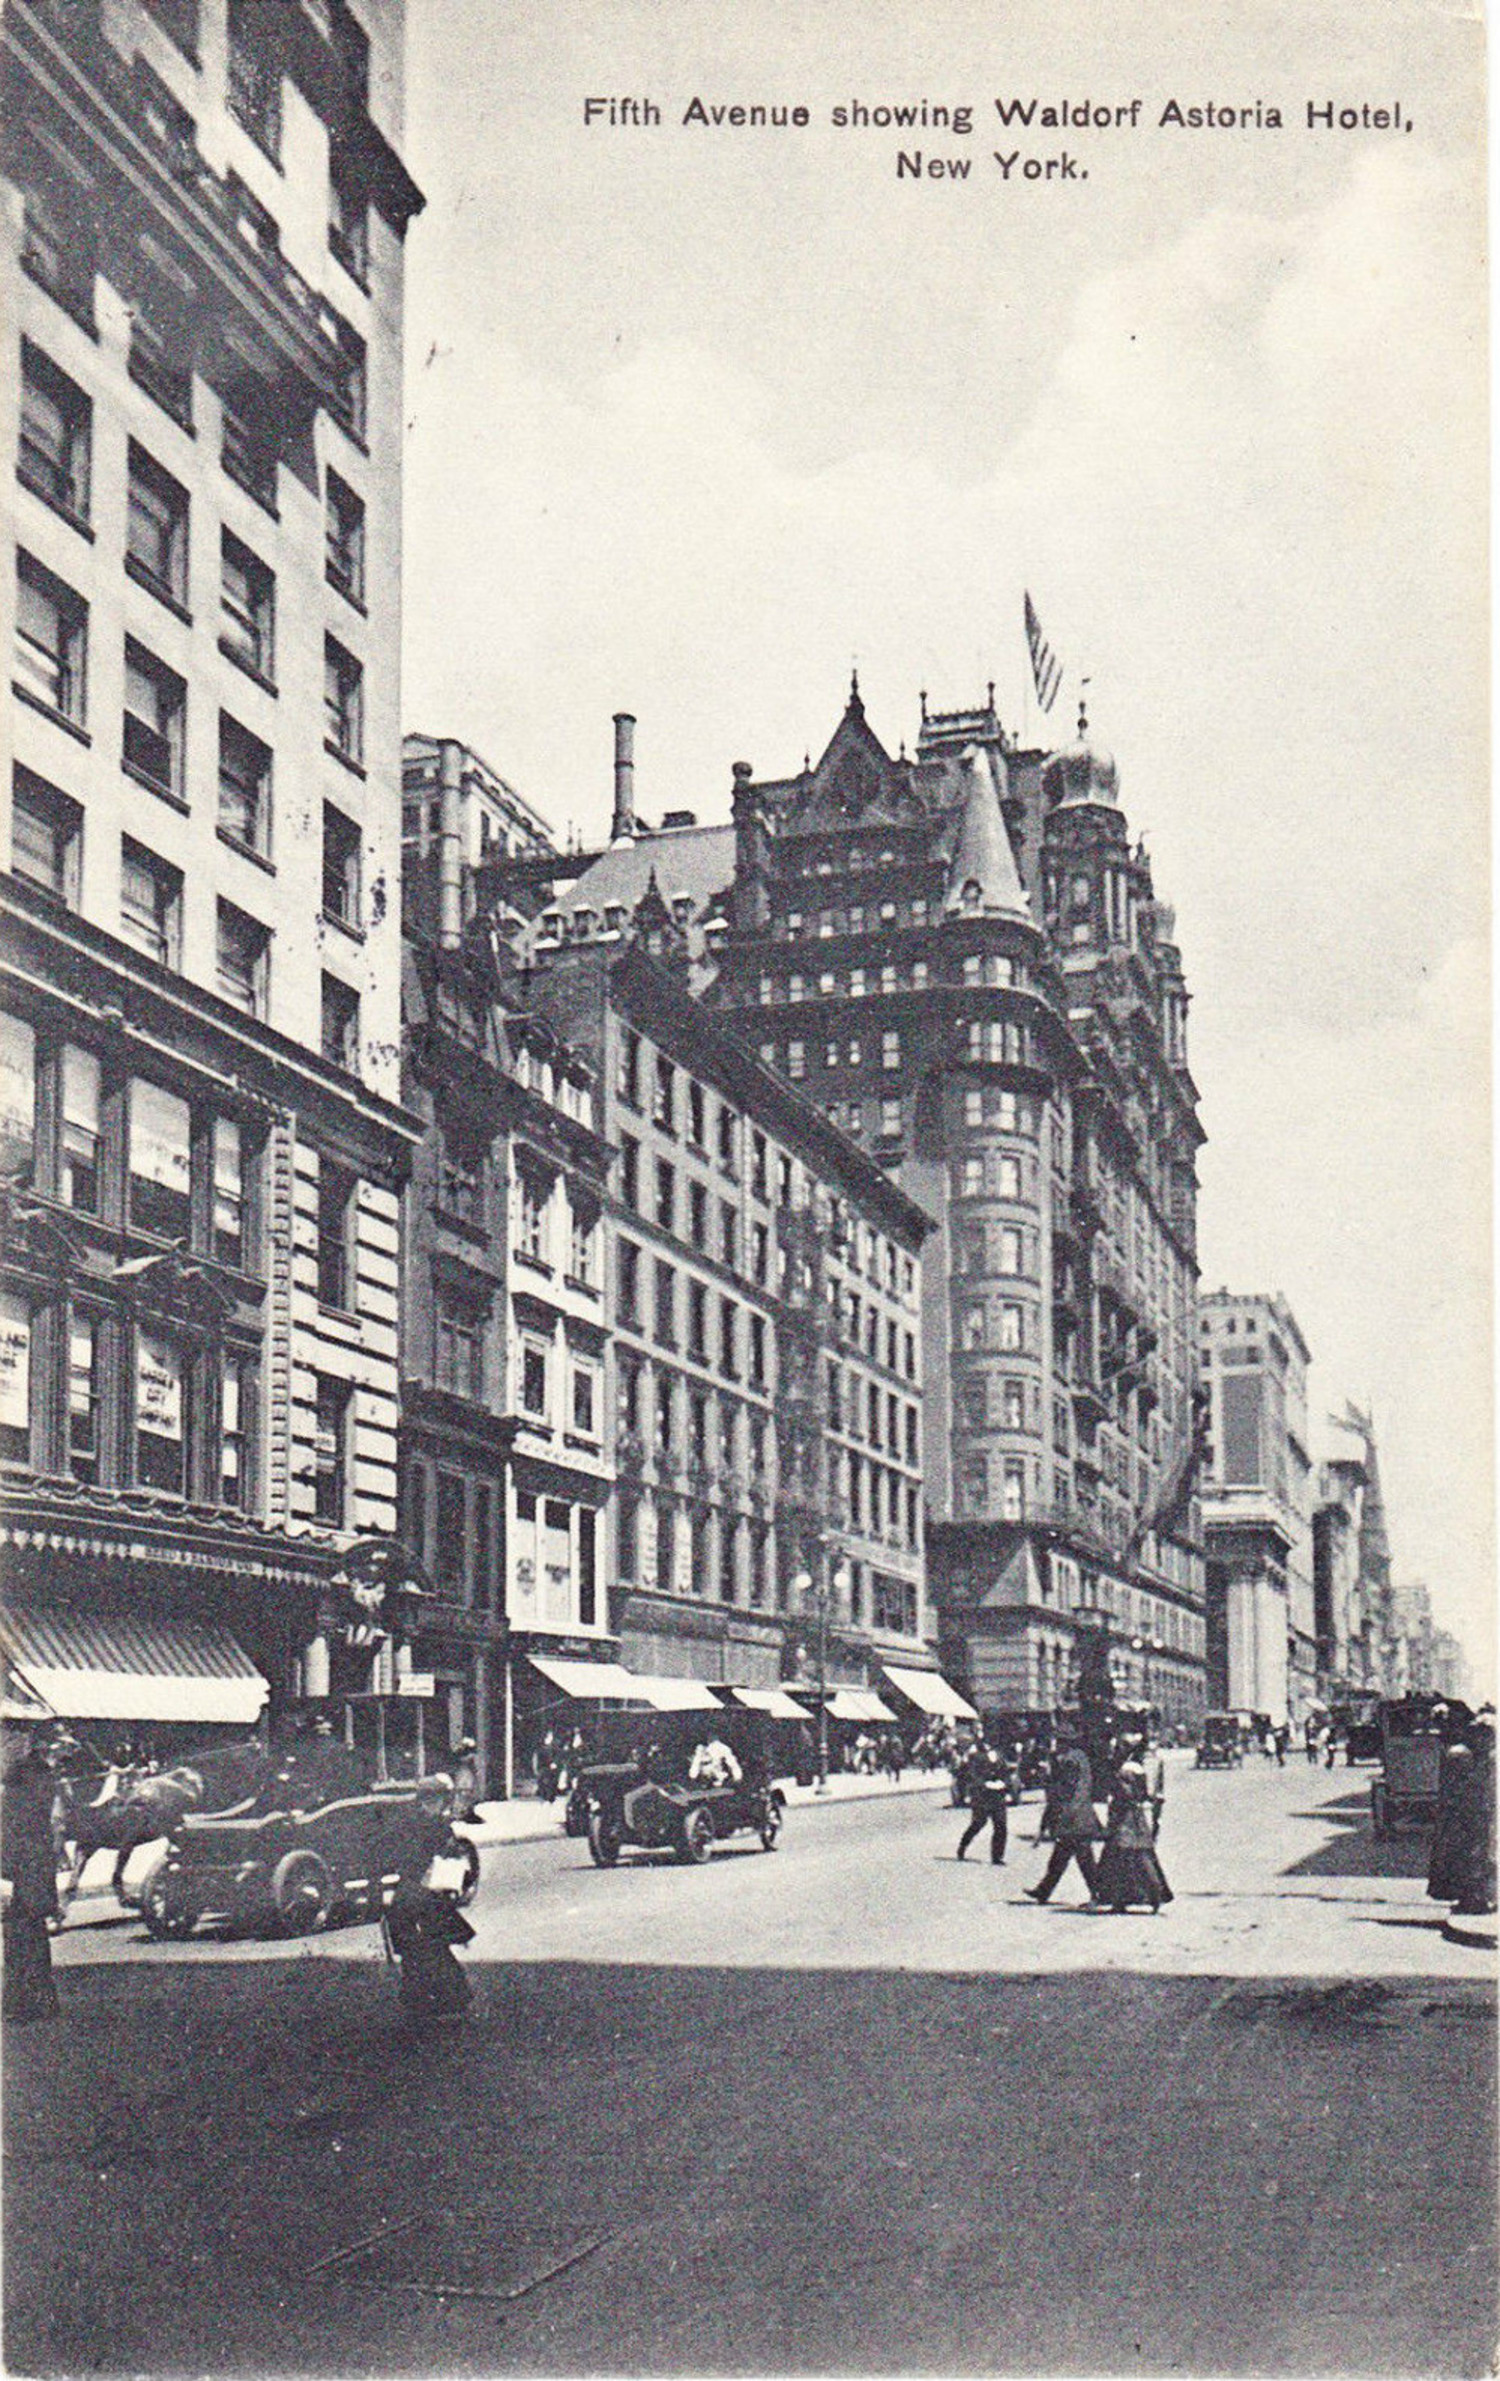 This photo postcard taken around 1915 is looking north on Fifth Avenue from 32nd Street. The turreted Waldorf-Astoria Hotel with its American flag raised on the roof is the focal point of this scene. There are no traffic signals to interrupt the  vehicular traffic on the avenue. People cross the street with little difficulty as the traffic is light.